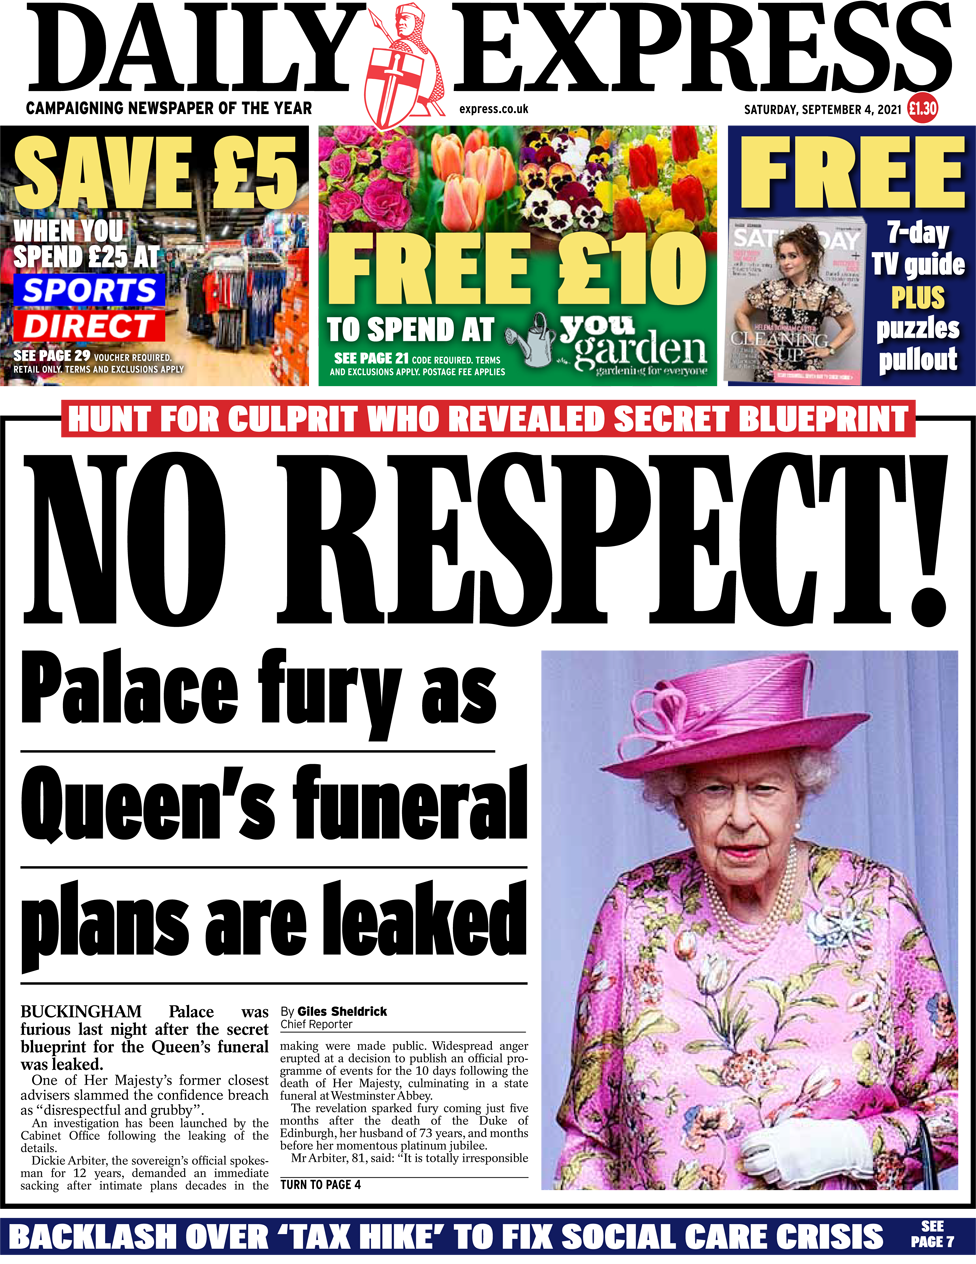 The Daily Express front page 4 September 2021